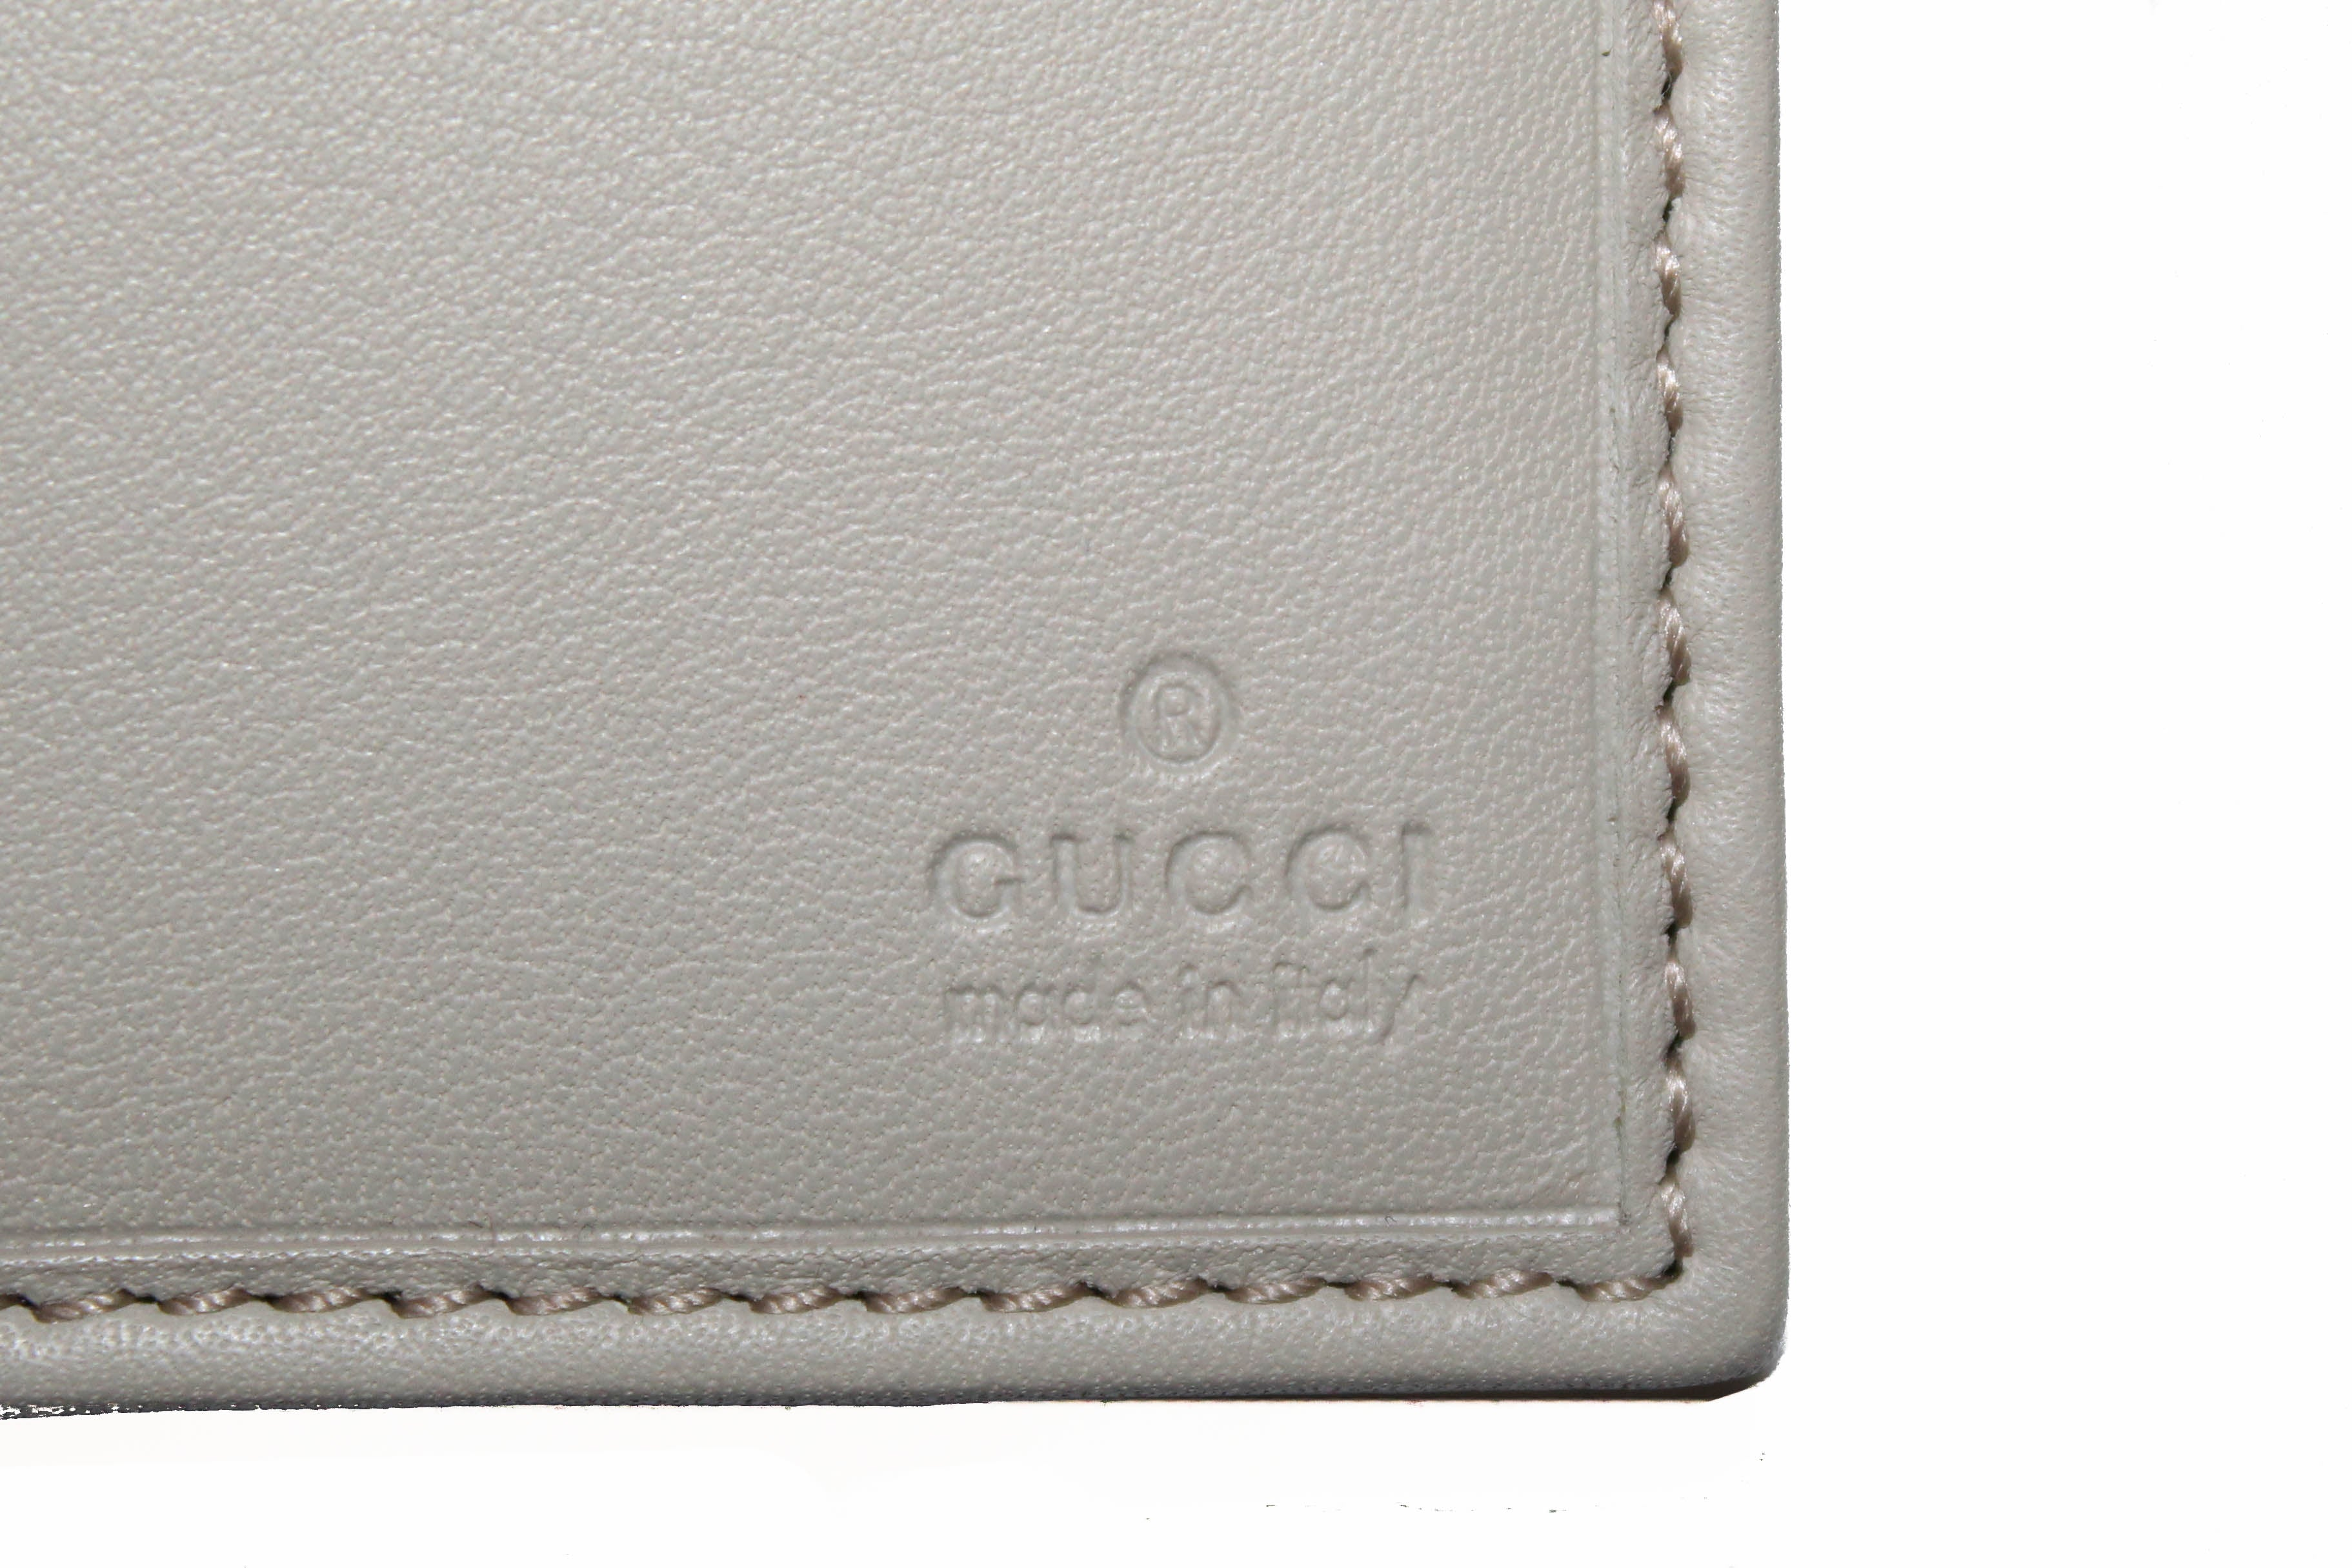 Authentic Gucci Ivory Guccissima Leather D-Ring Long Wallet